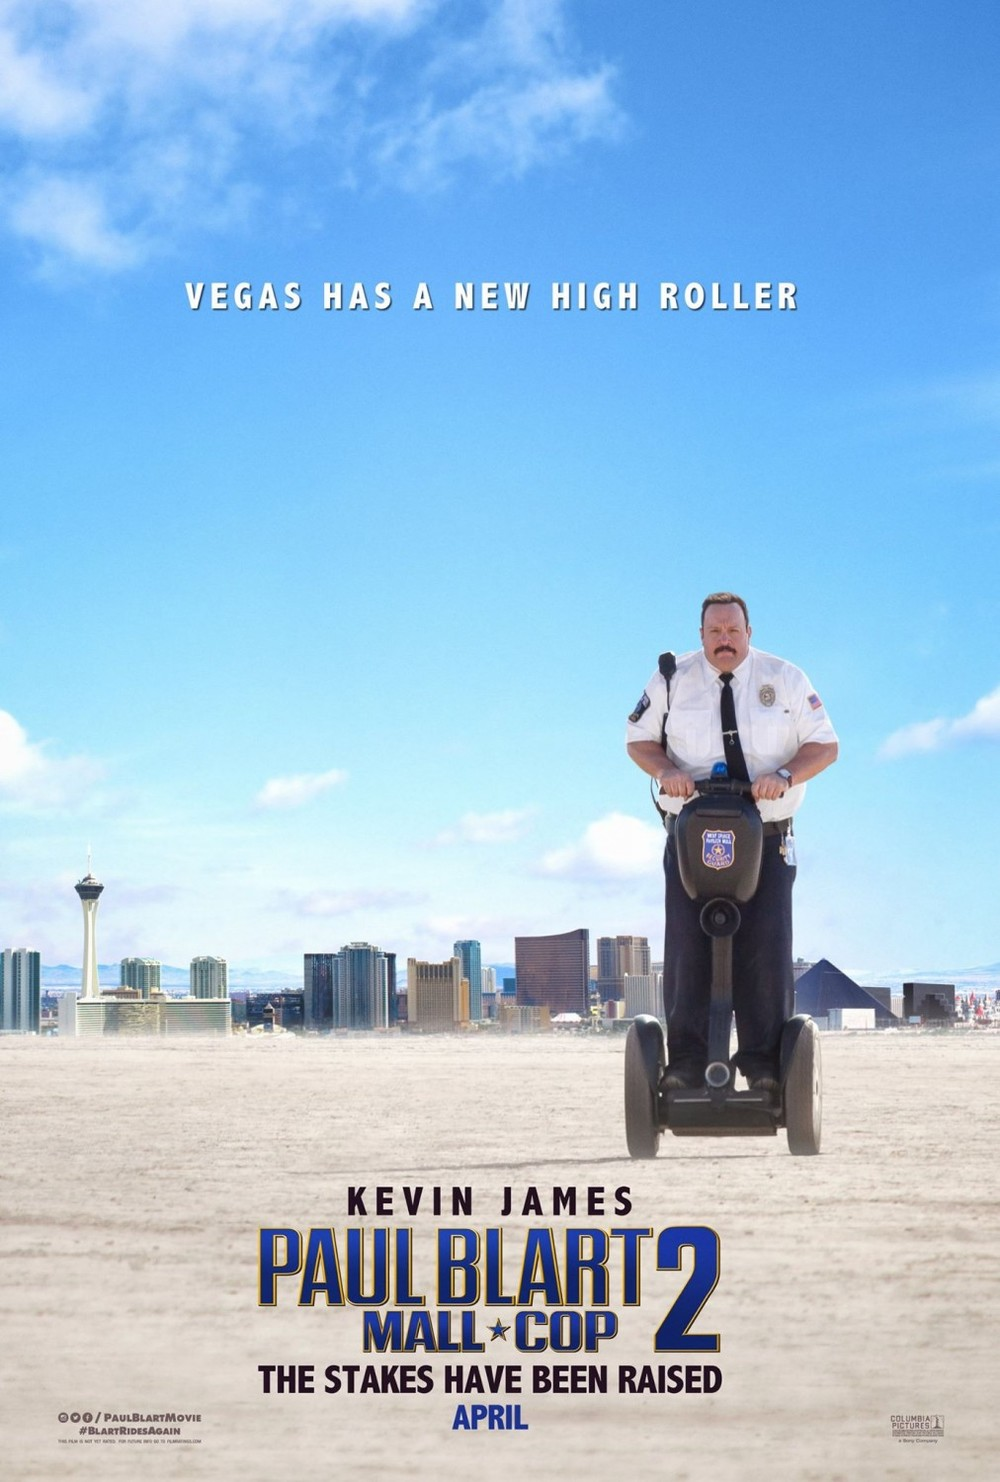 This one is barely even better. Why is he segwaying AWAY from Vegas? What are they trying to say with this poster? I assume he's the high roller because he's literally rolling on a thing, but he's rolling in the opposite direction from where we were just told a high roller was going to be. What am I to assume, that there's someone else rolling higher than him, and that he's rolling away from this challenge? What a shithead. I don't want to see a film starring someone as cowardly as that.